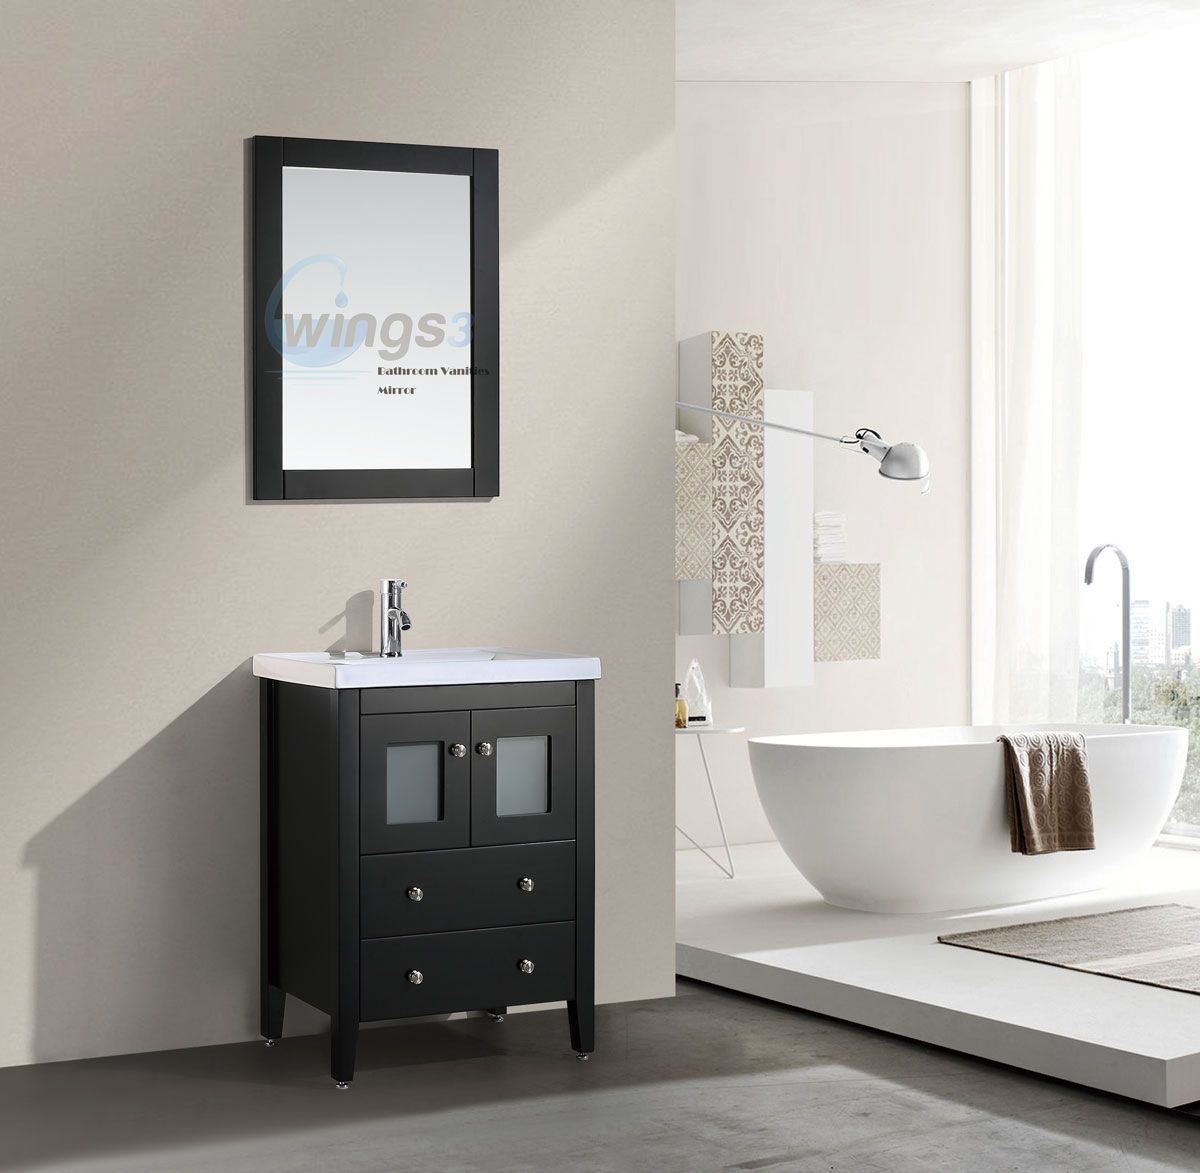 Bathroom Cabinet Manufacturers Ws 9017 24 01 With Images